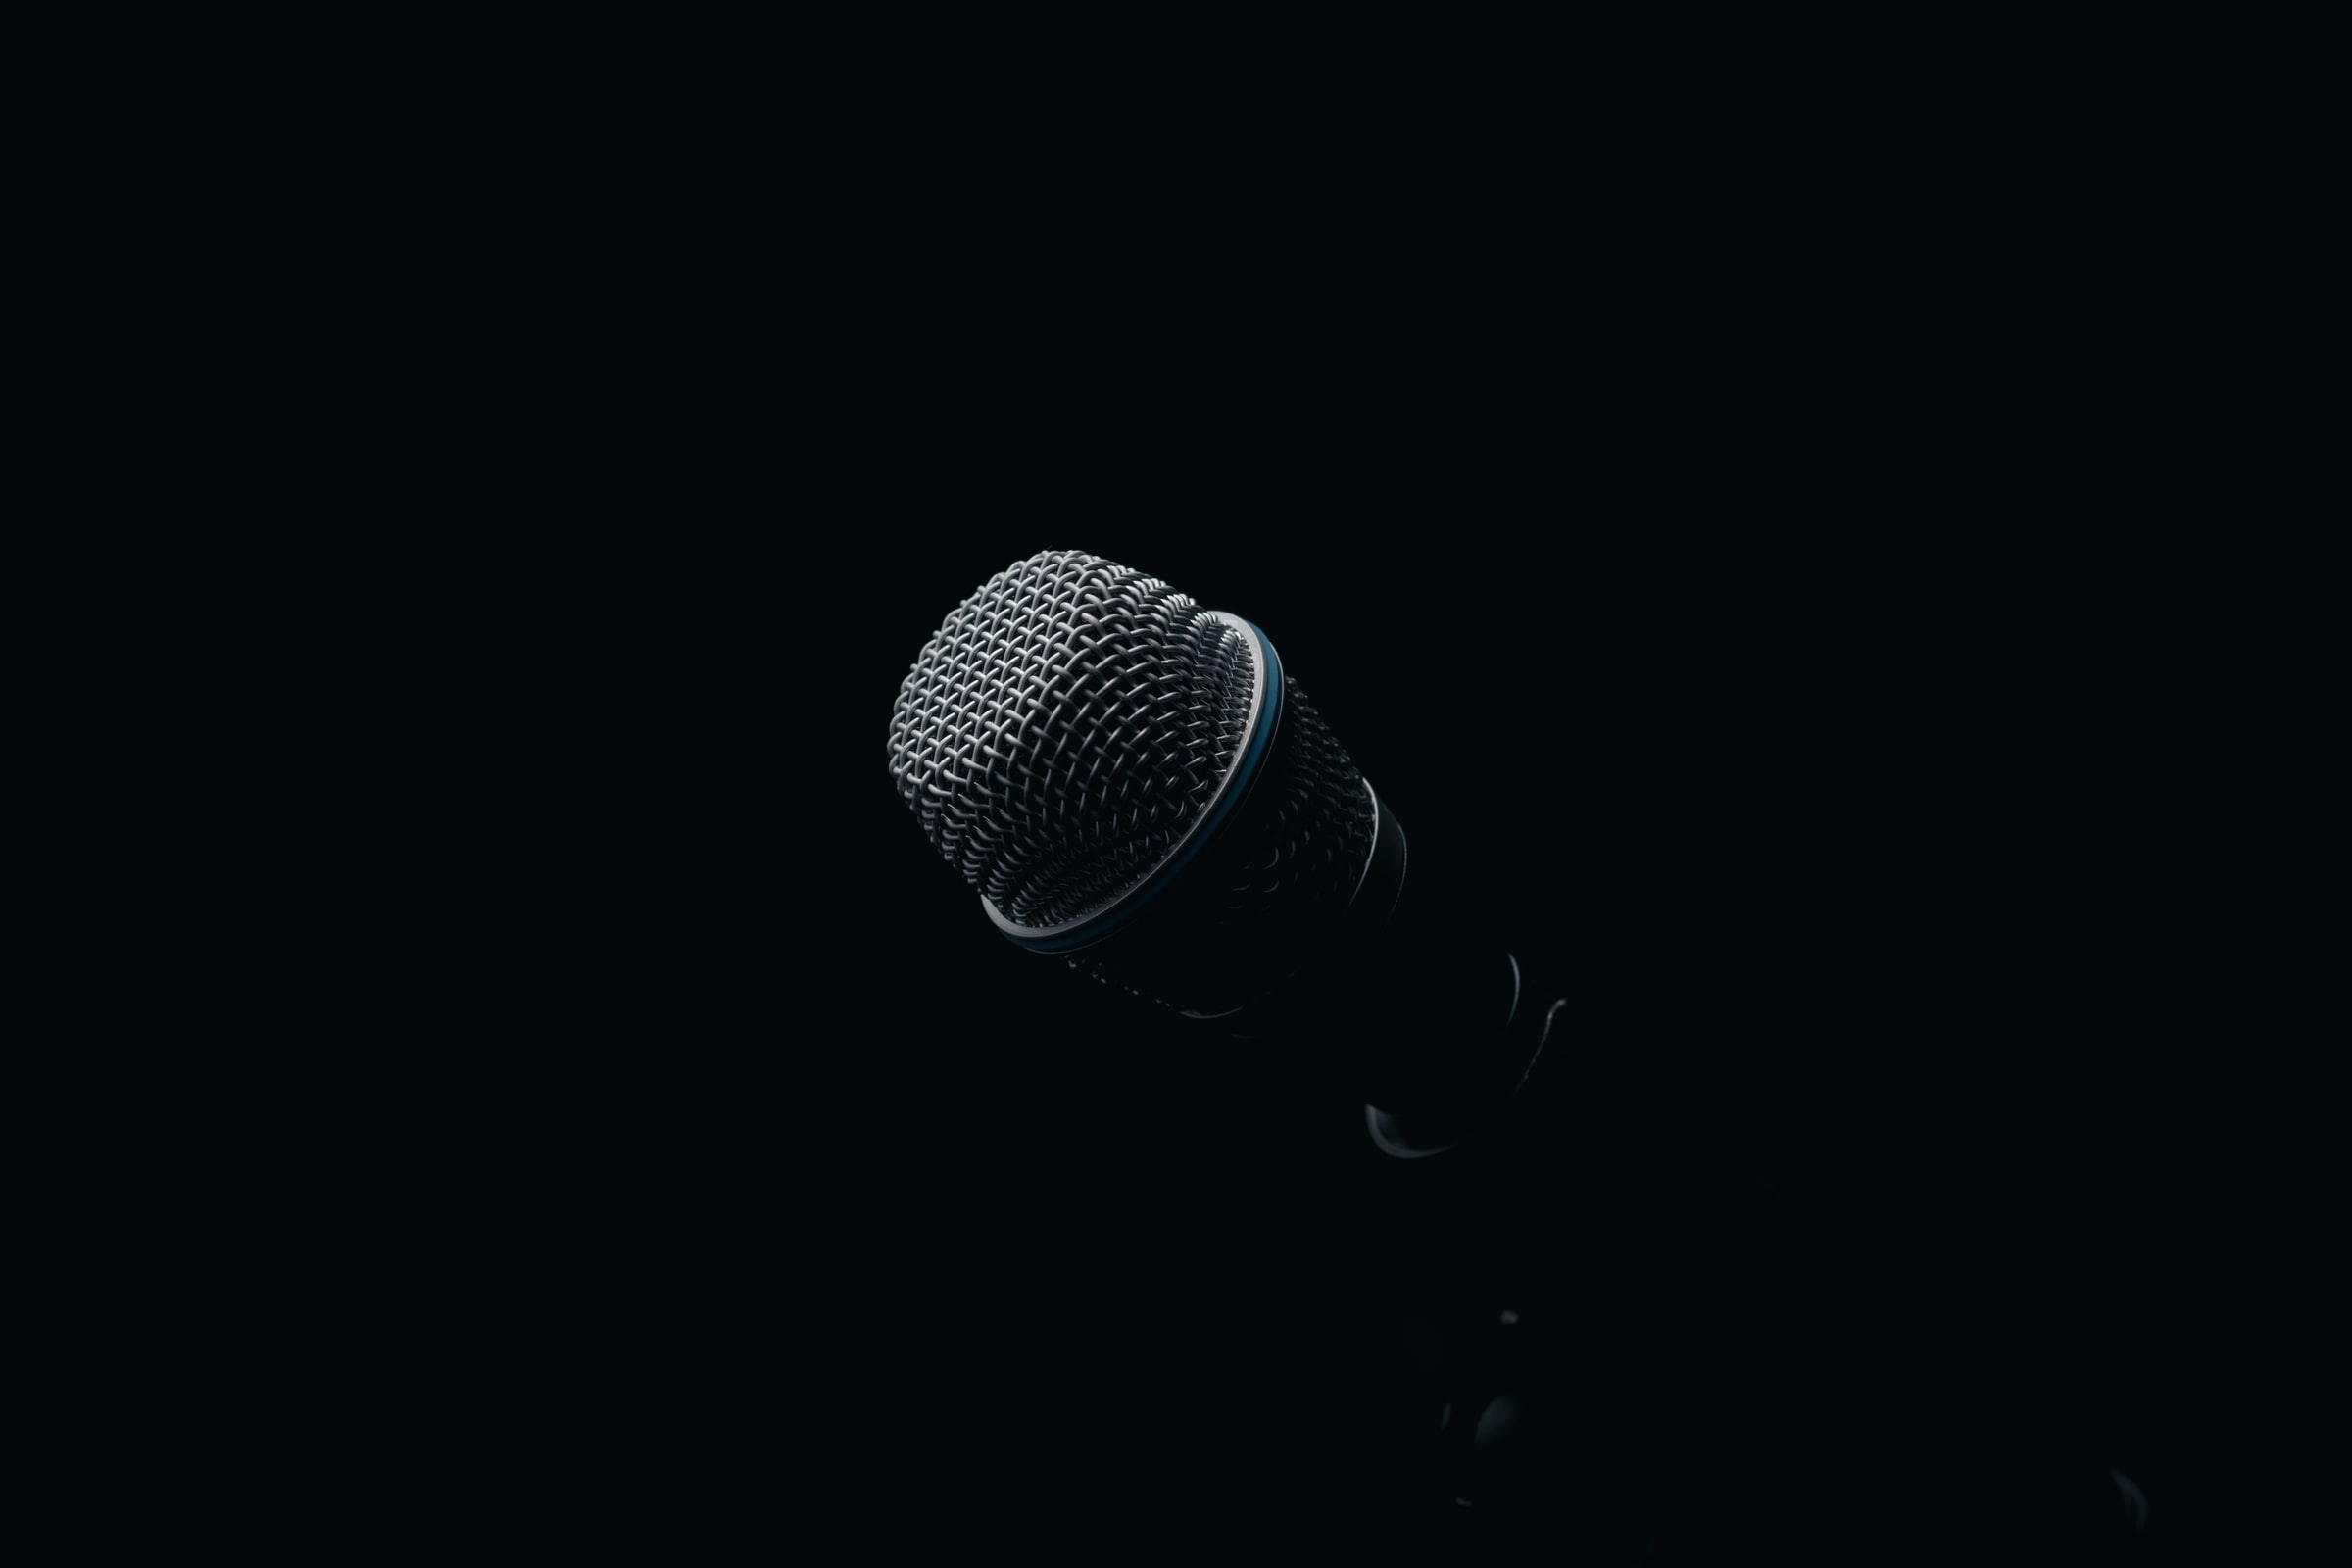 Image of a microphone against a dark backdrop